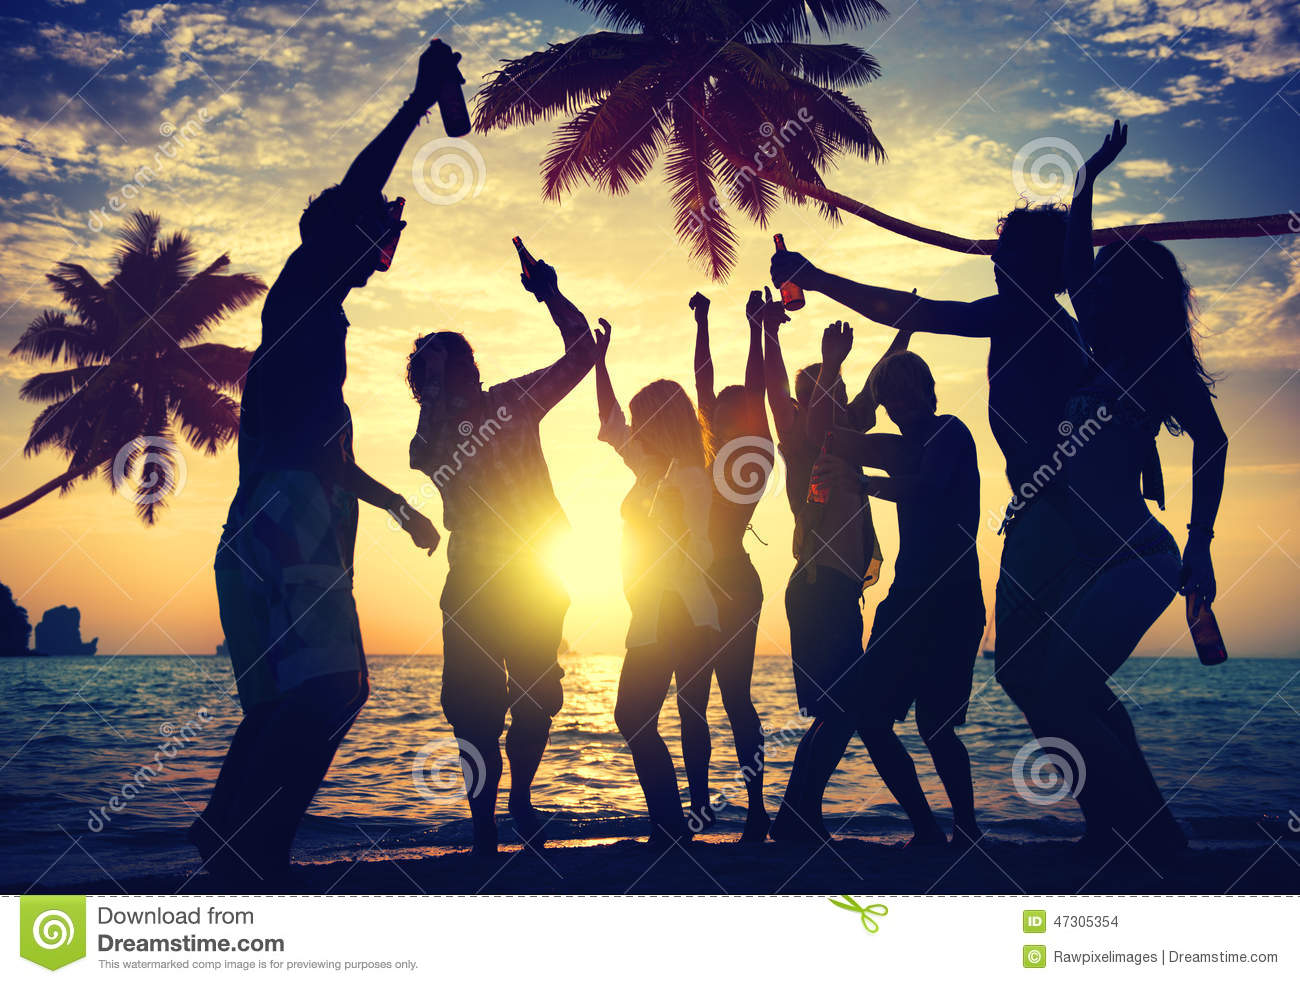 Henry V Penguin Monarchs likewise Plan thumbs also Stock Photo People Teenagers Summer Enjoying Beach Party Concept Image47305354 further Nikon D500 af S Nikkor 50mm F 1 8g also Tour Of Crete Senesi. on vintage settings